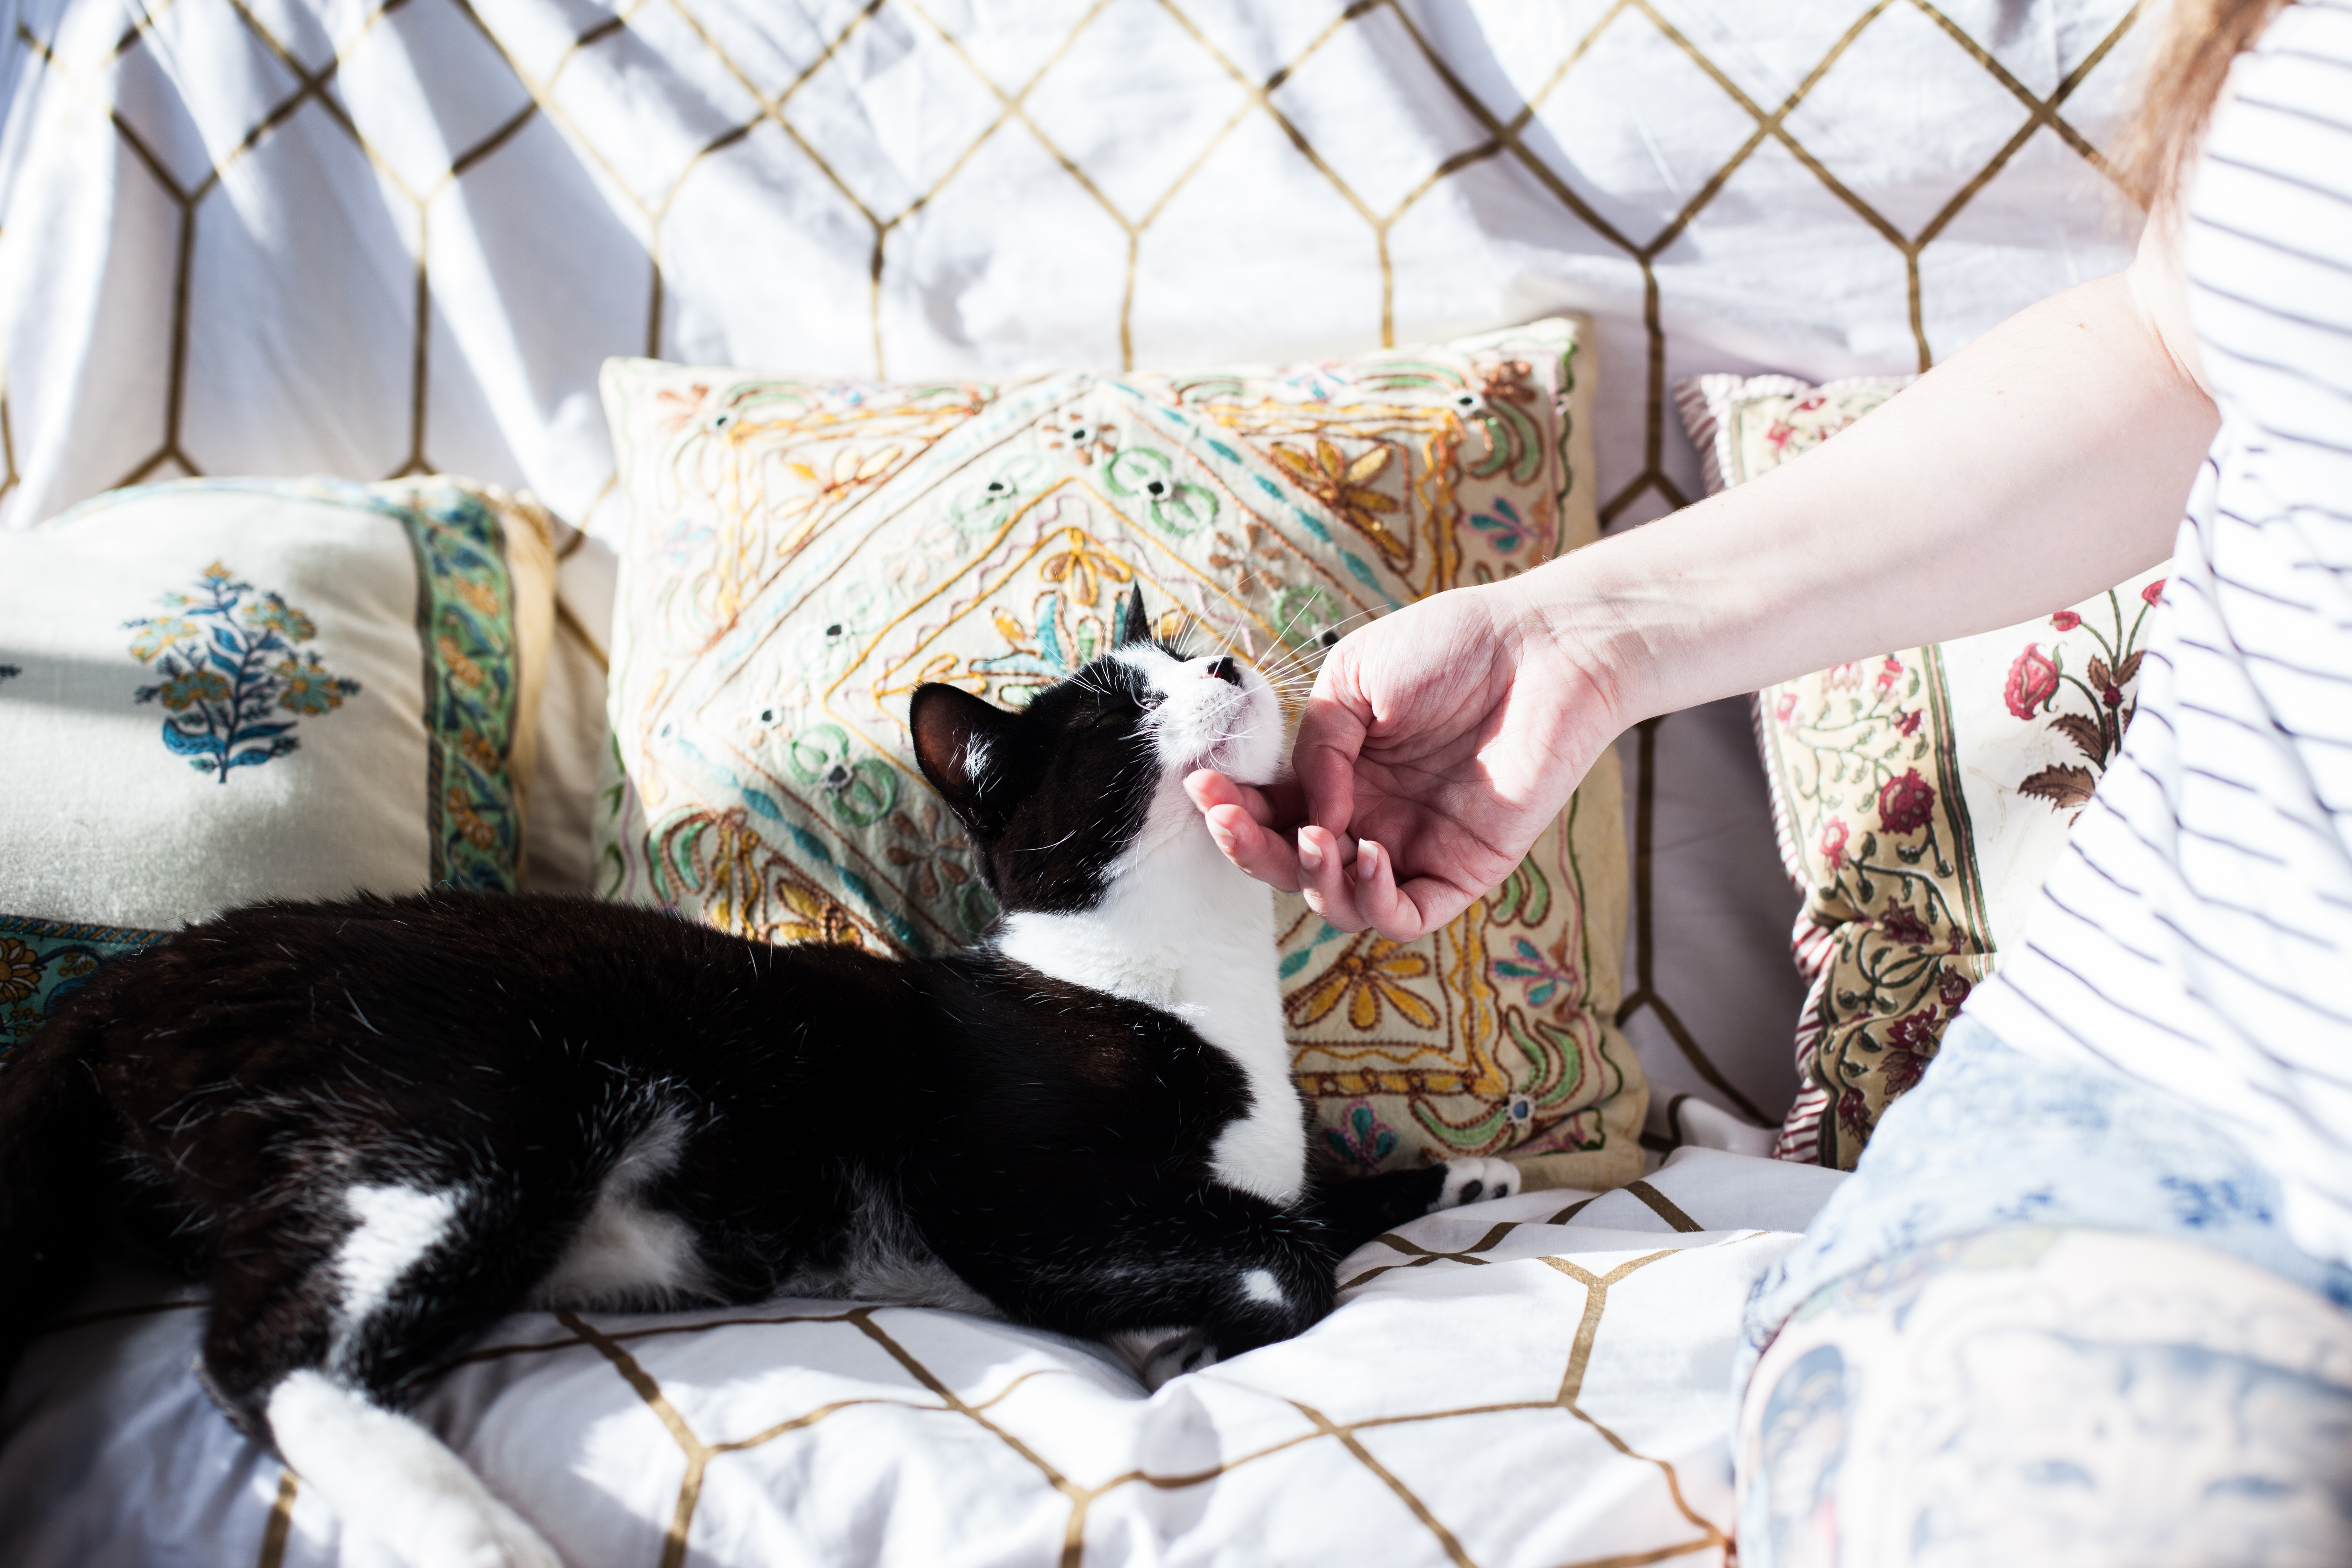 This couple got married inthe presence ofmore than 1,000 cats